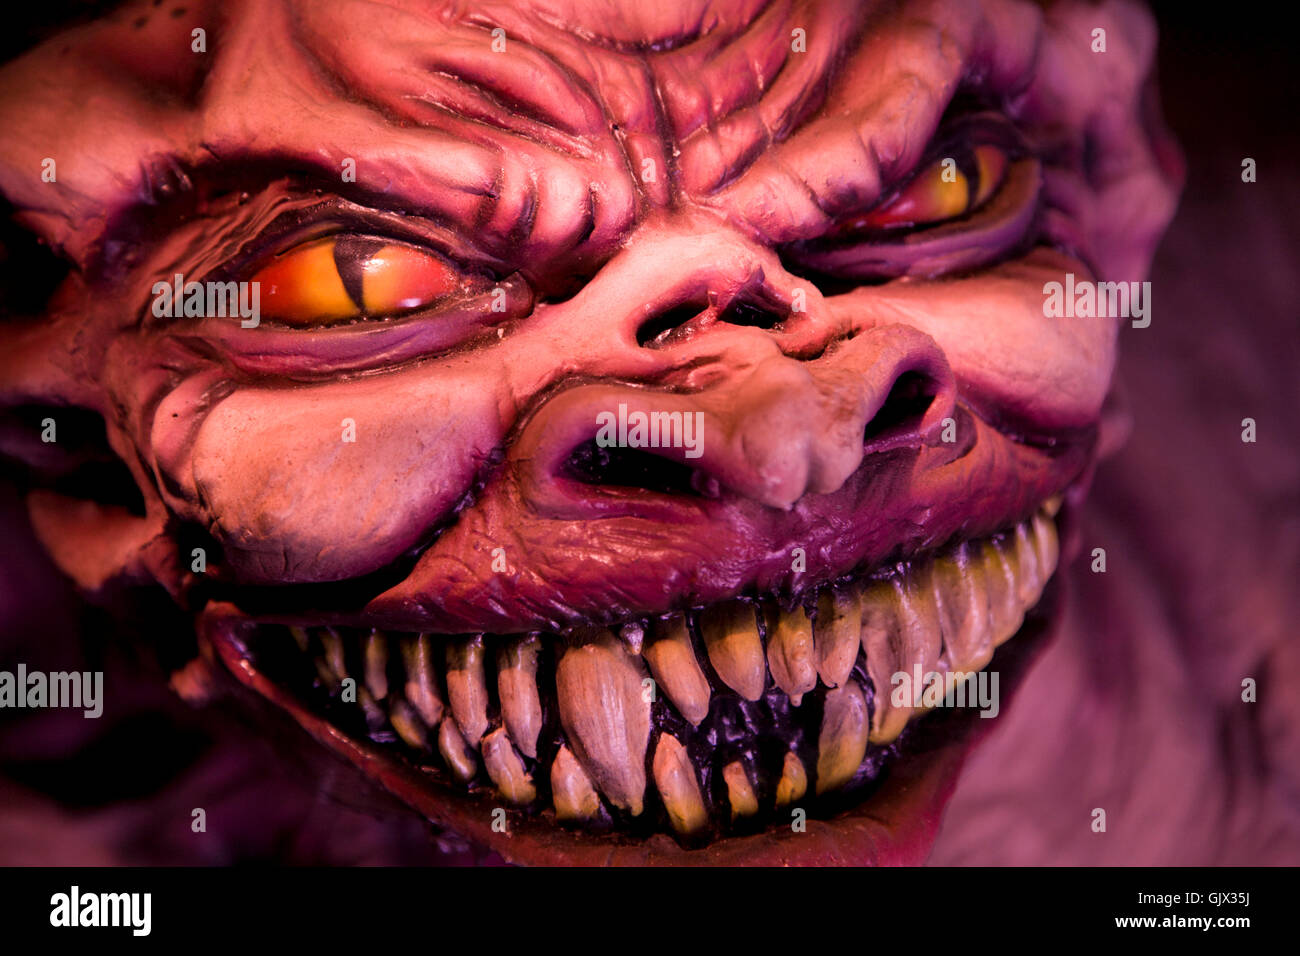 Scary Creature Stock Photos Images